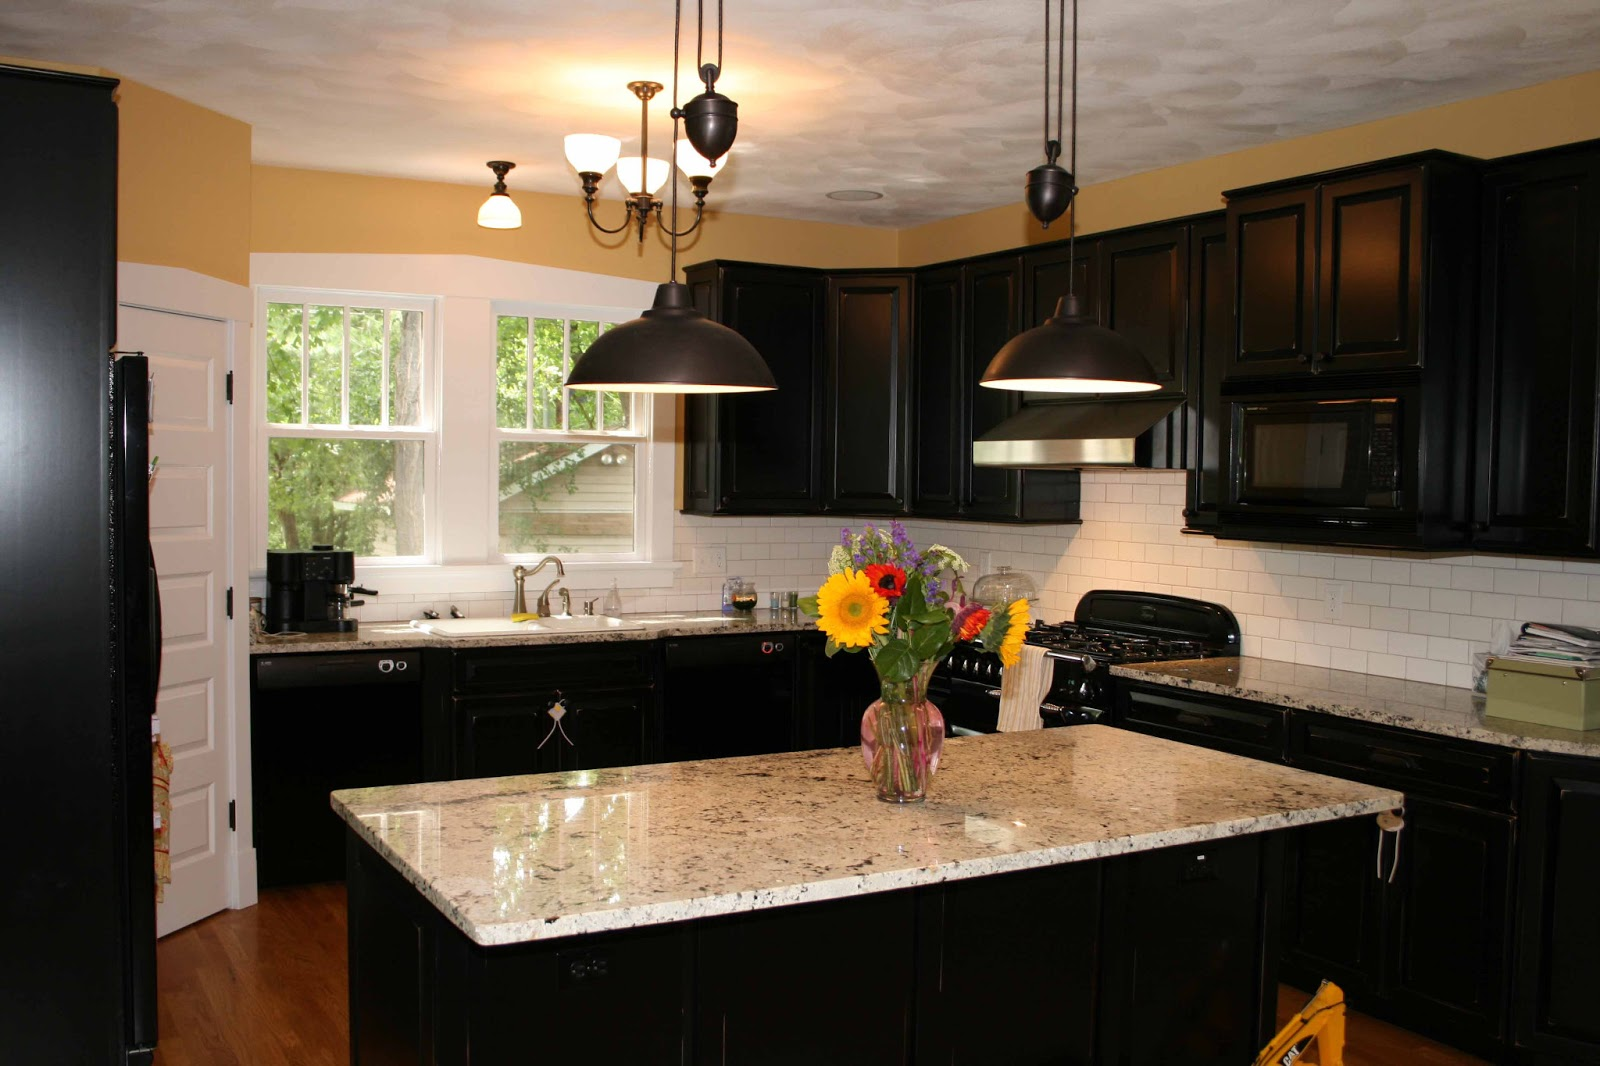 Kraftmaid Kitchen Cabinets Reviews Kraftmaid Kitchen Cabinets – Thomasville Kitchen Cabinets Review